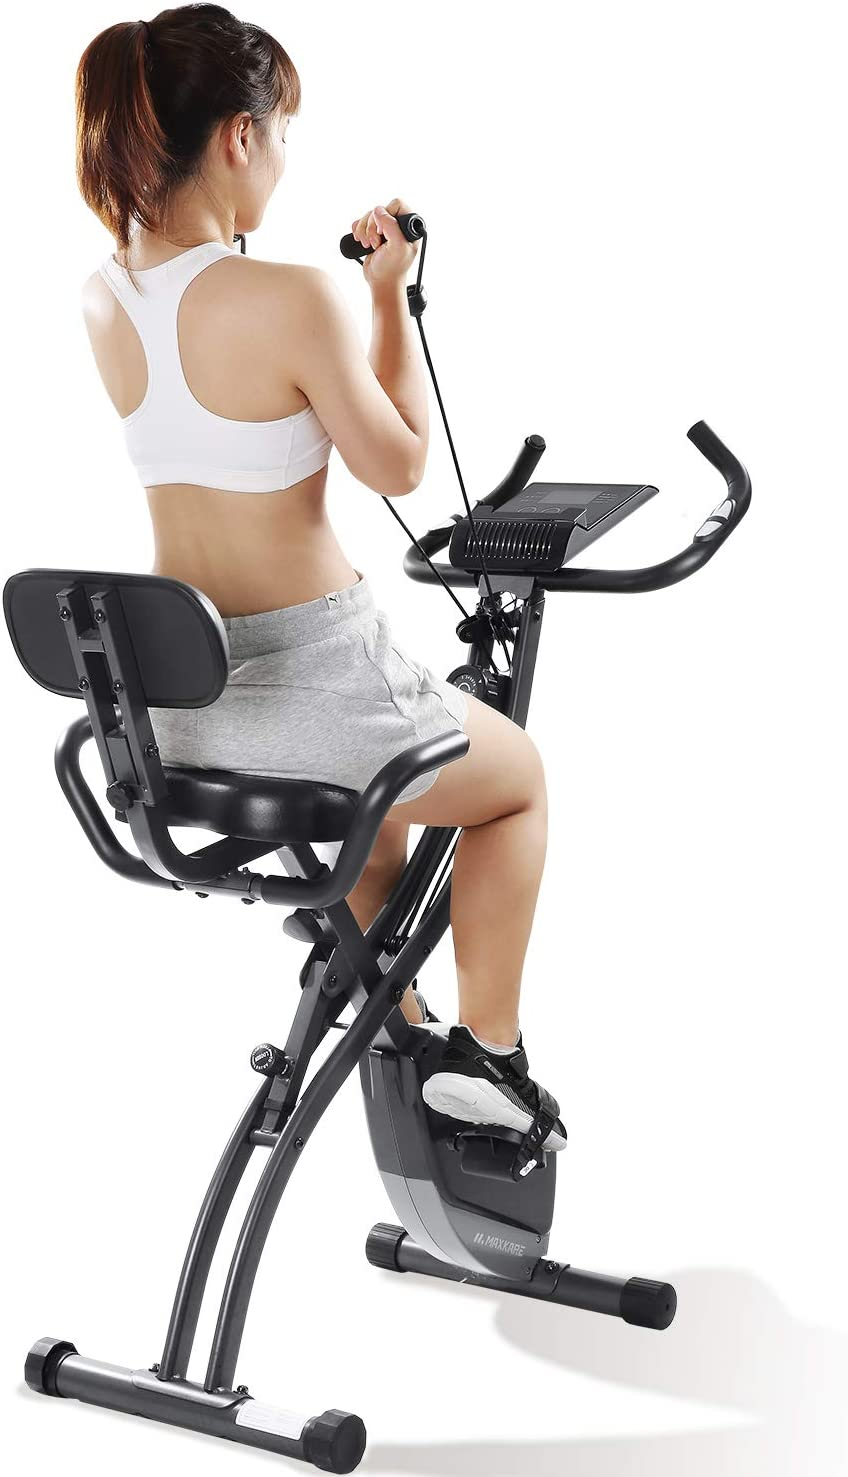 MaxKare Exercise Bike 3-in-1 Folding Stationary Bike Recumbent Exercise Bike Machine Home Seated Portable with Adjustable Arm Resistance Bands/LCD Monitor and Pulse Grip